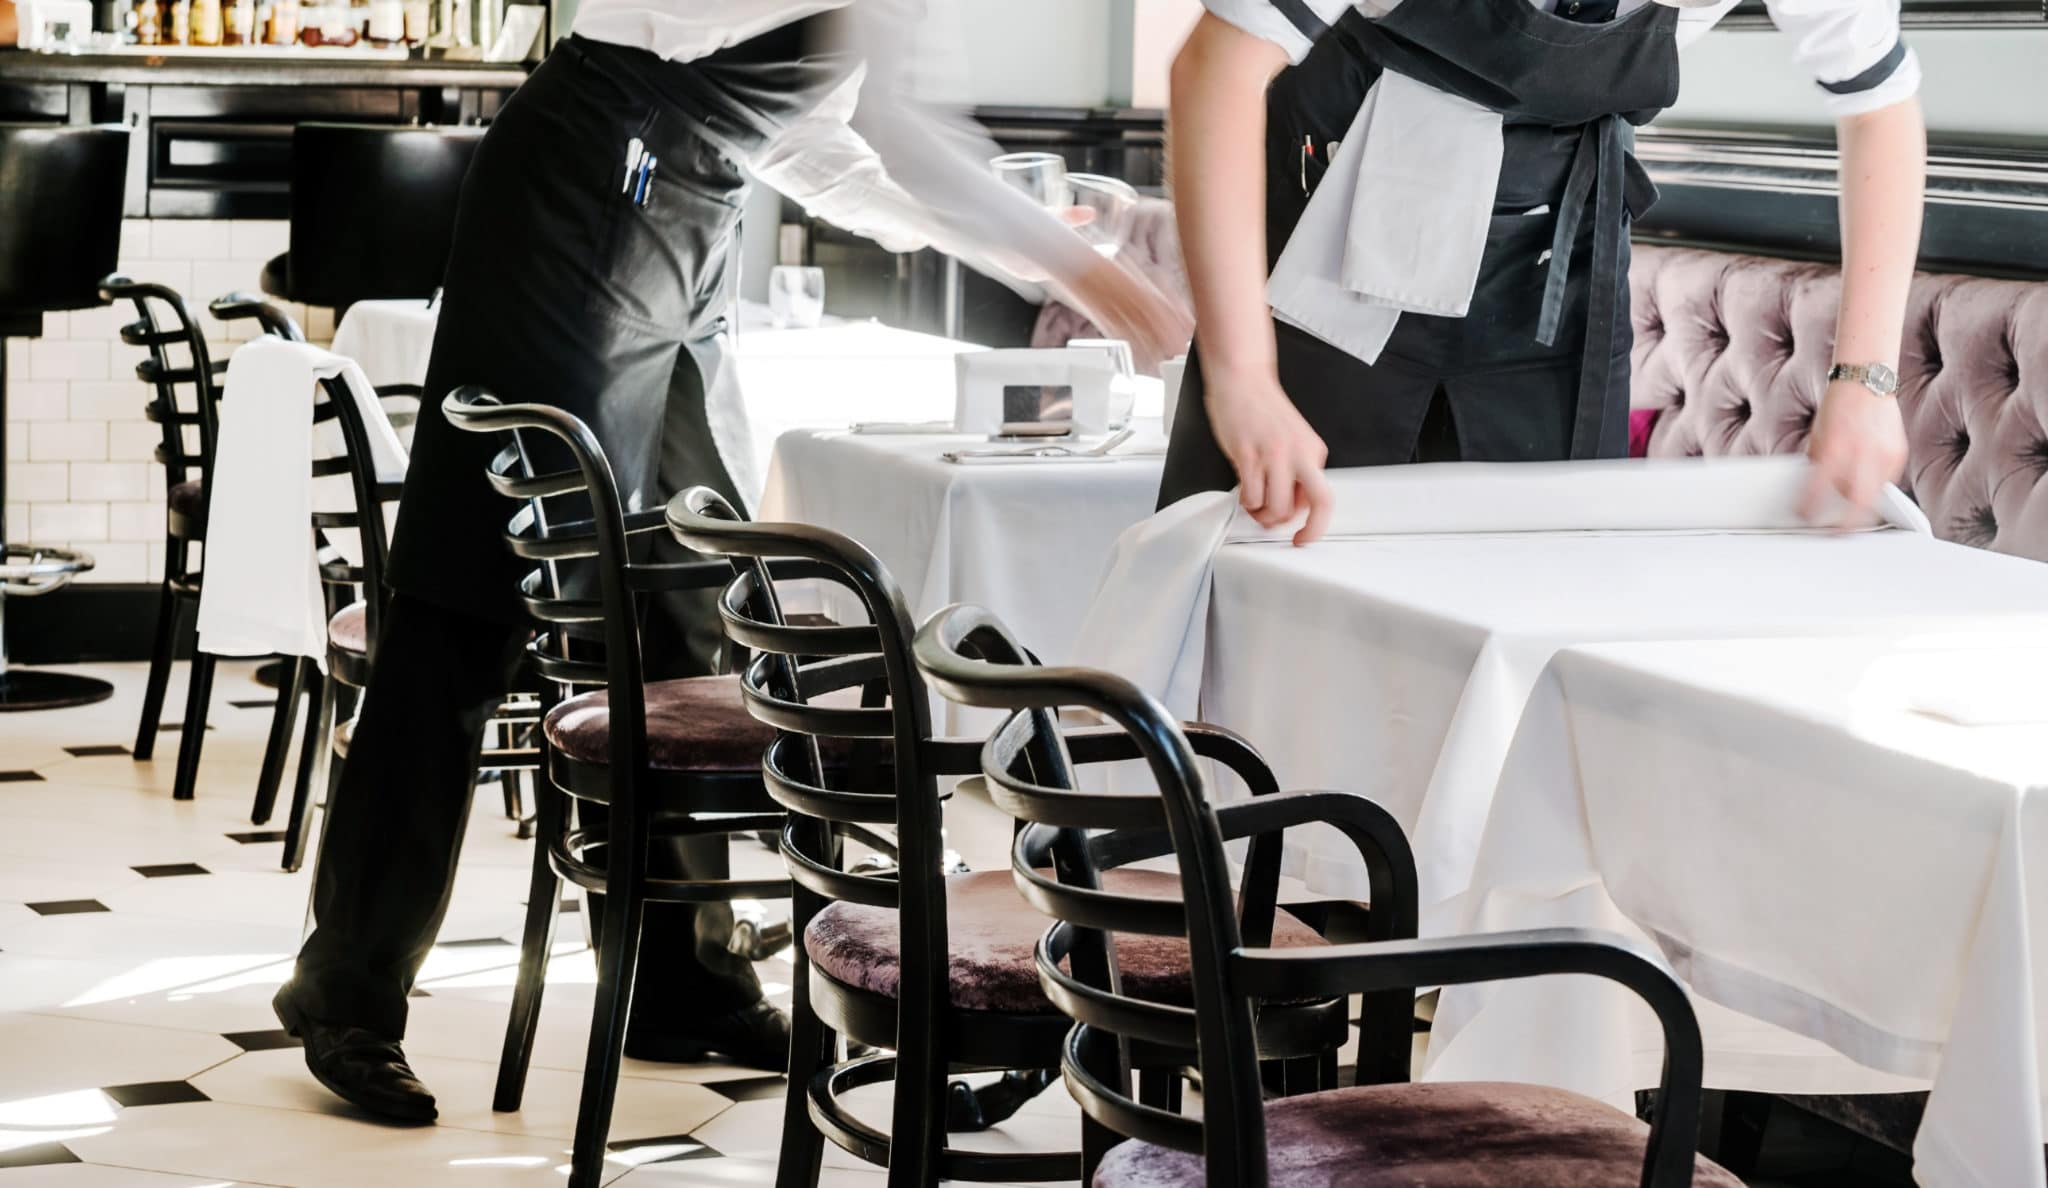 restaurant service putting out tablecloths